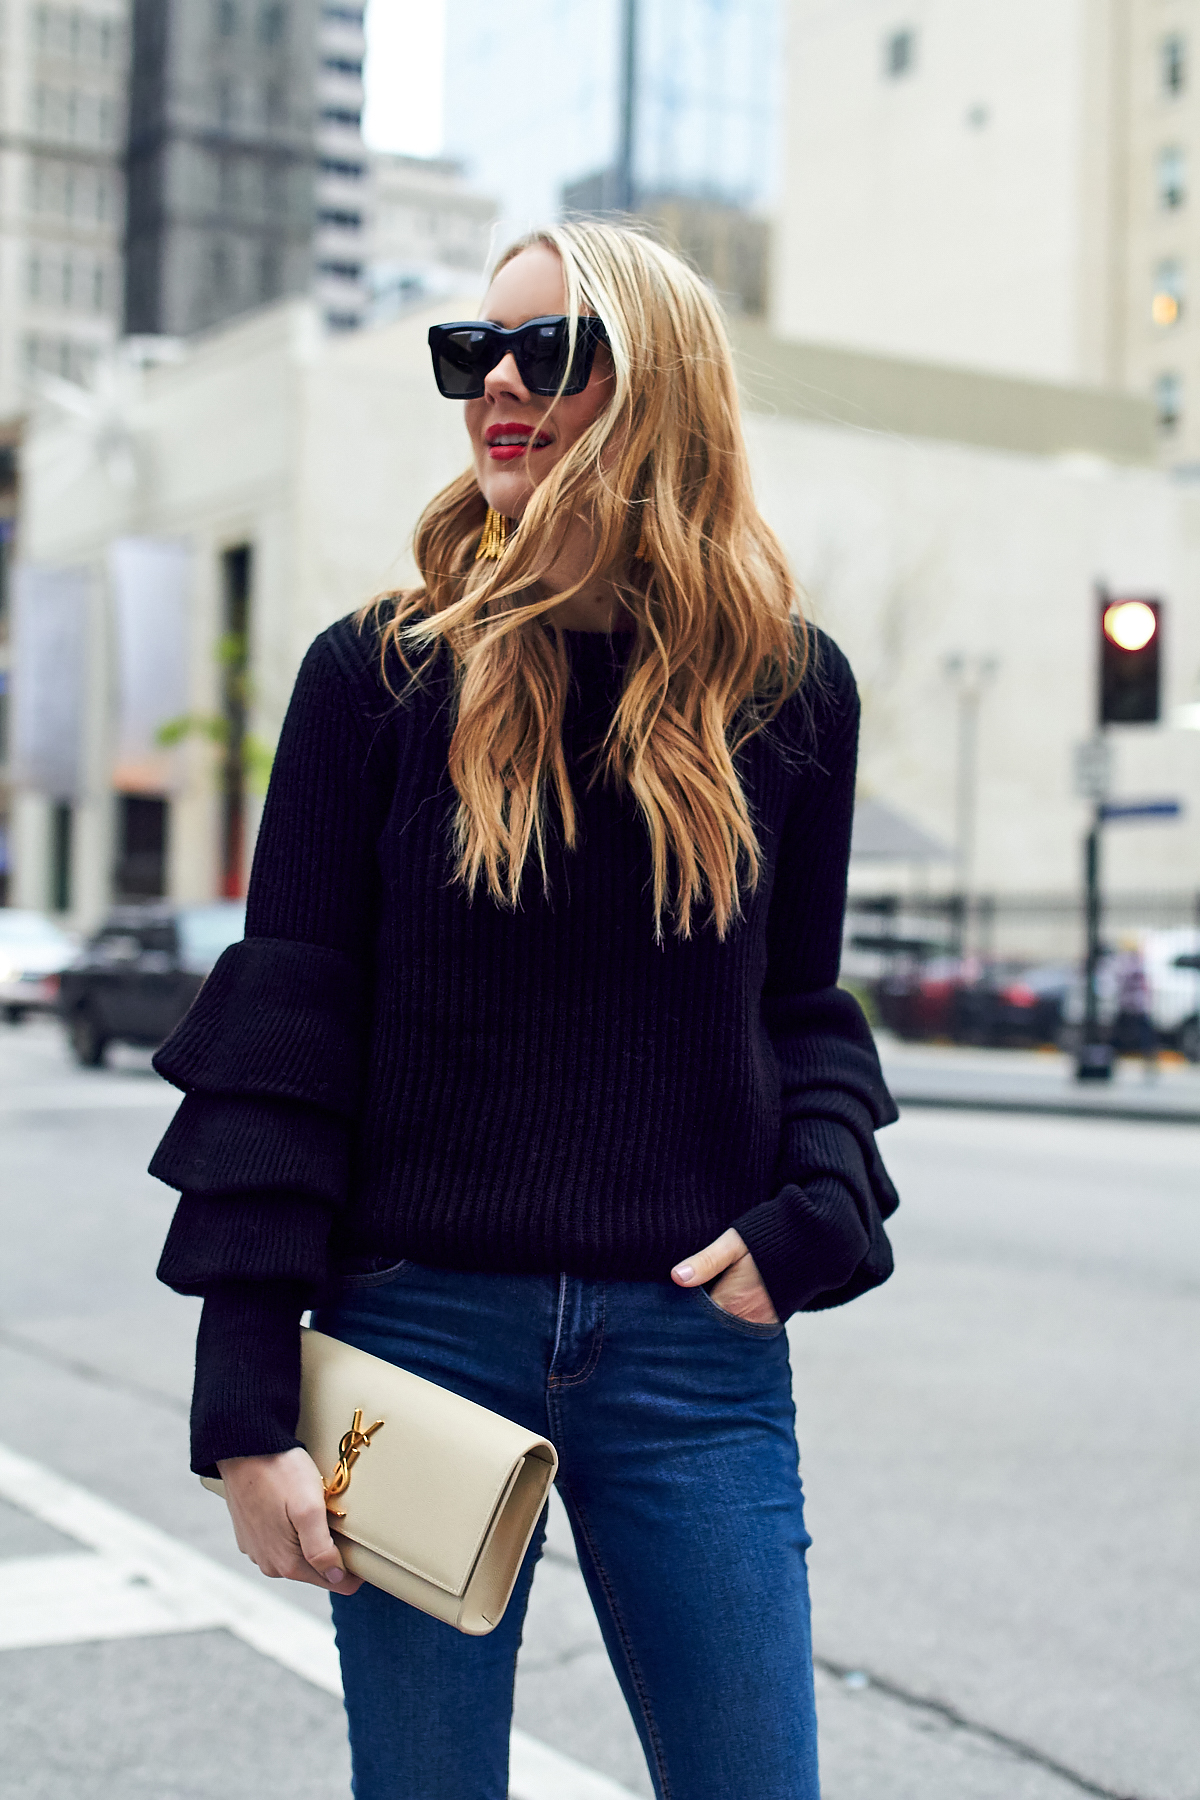 Fall Outfit, Winter Outfit, Ruffle Sleeve Sweater, Saint Laurent Clutch, Red Lipstick